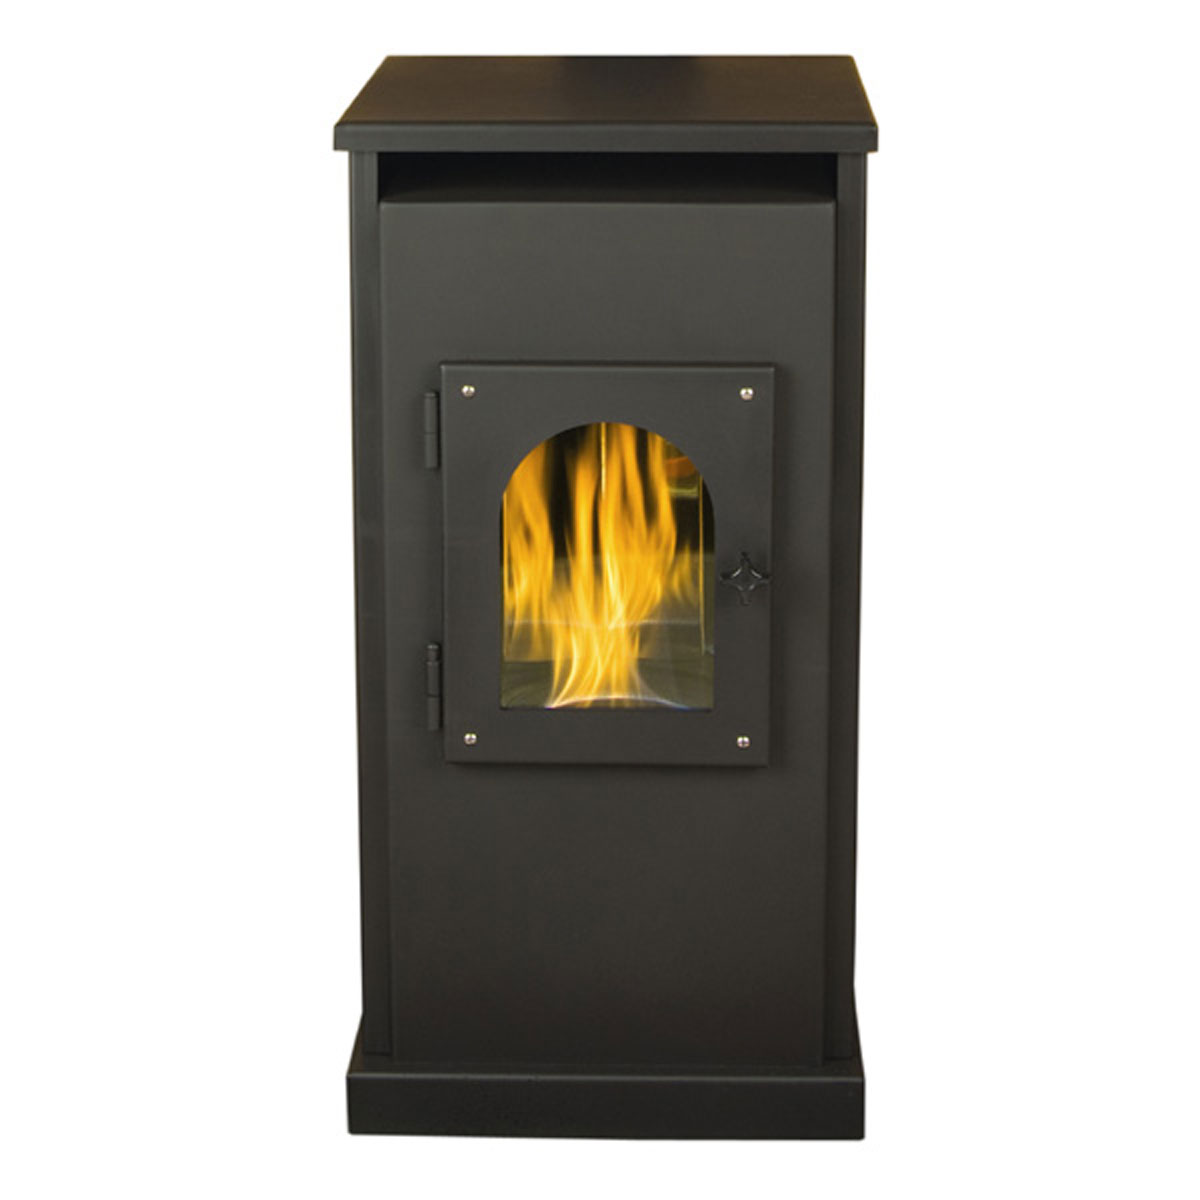 Arctic Oil Stove, High Effeciency Stove From Kuma Stoves